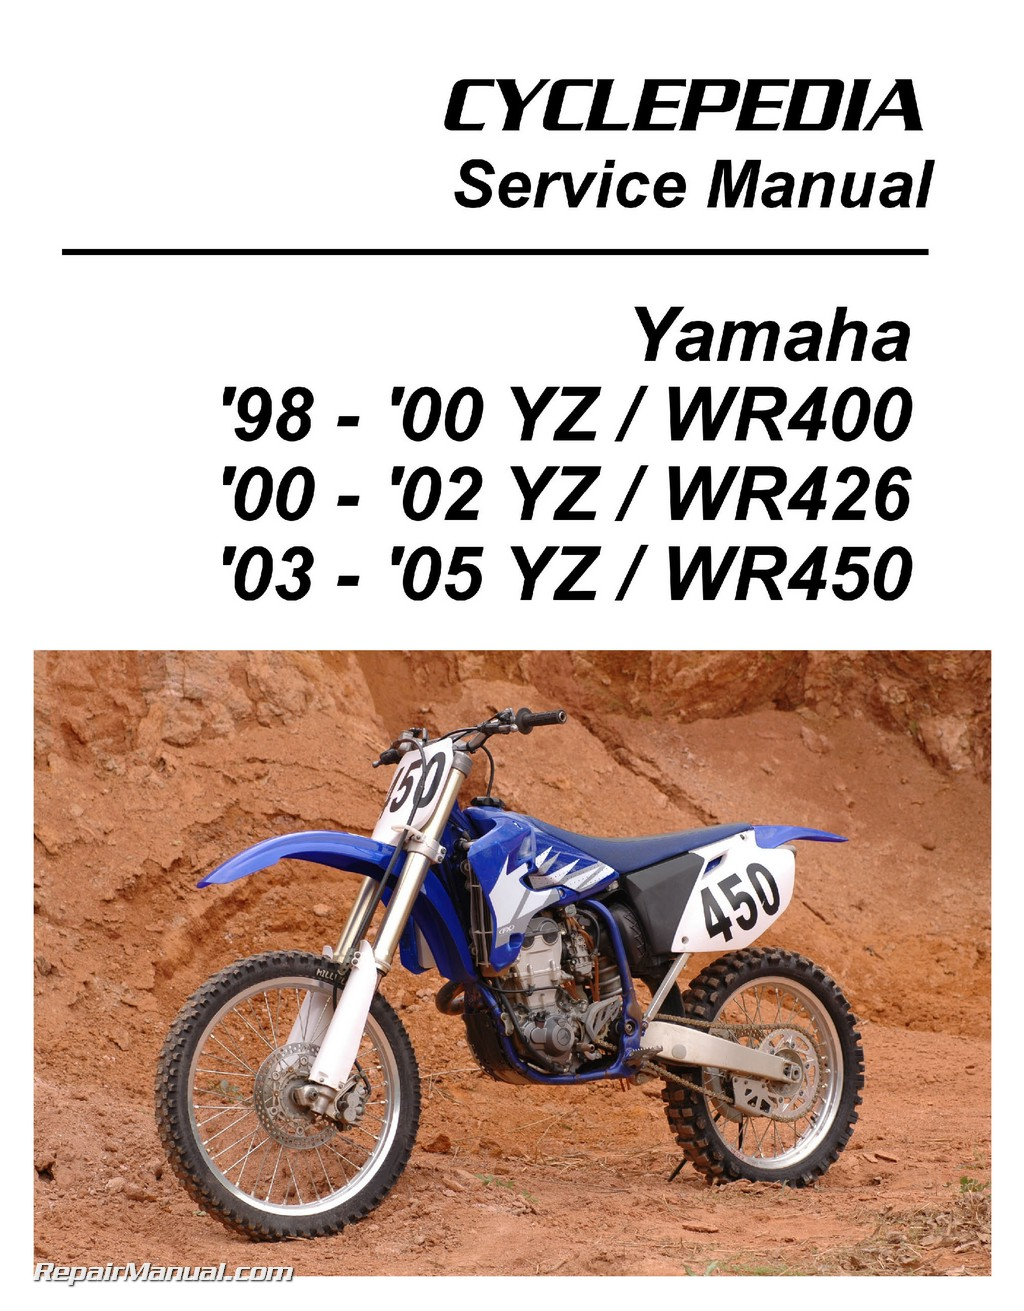 Yamaha Yz Wr 400 426 450f Cyclepedia Printed Motorcycle Service Manual 2002 125 Wiring Diagram